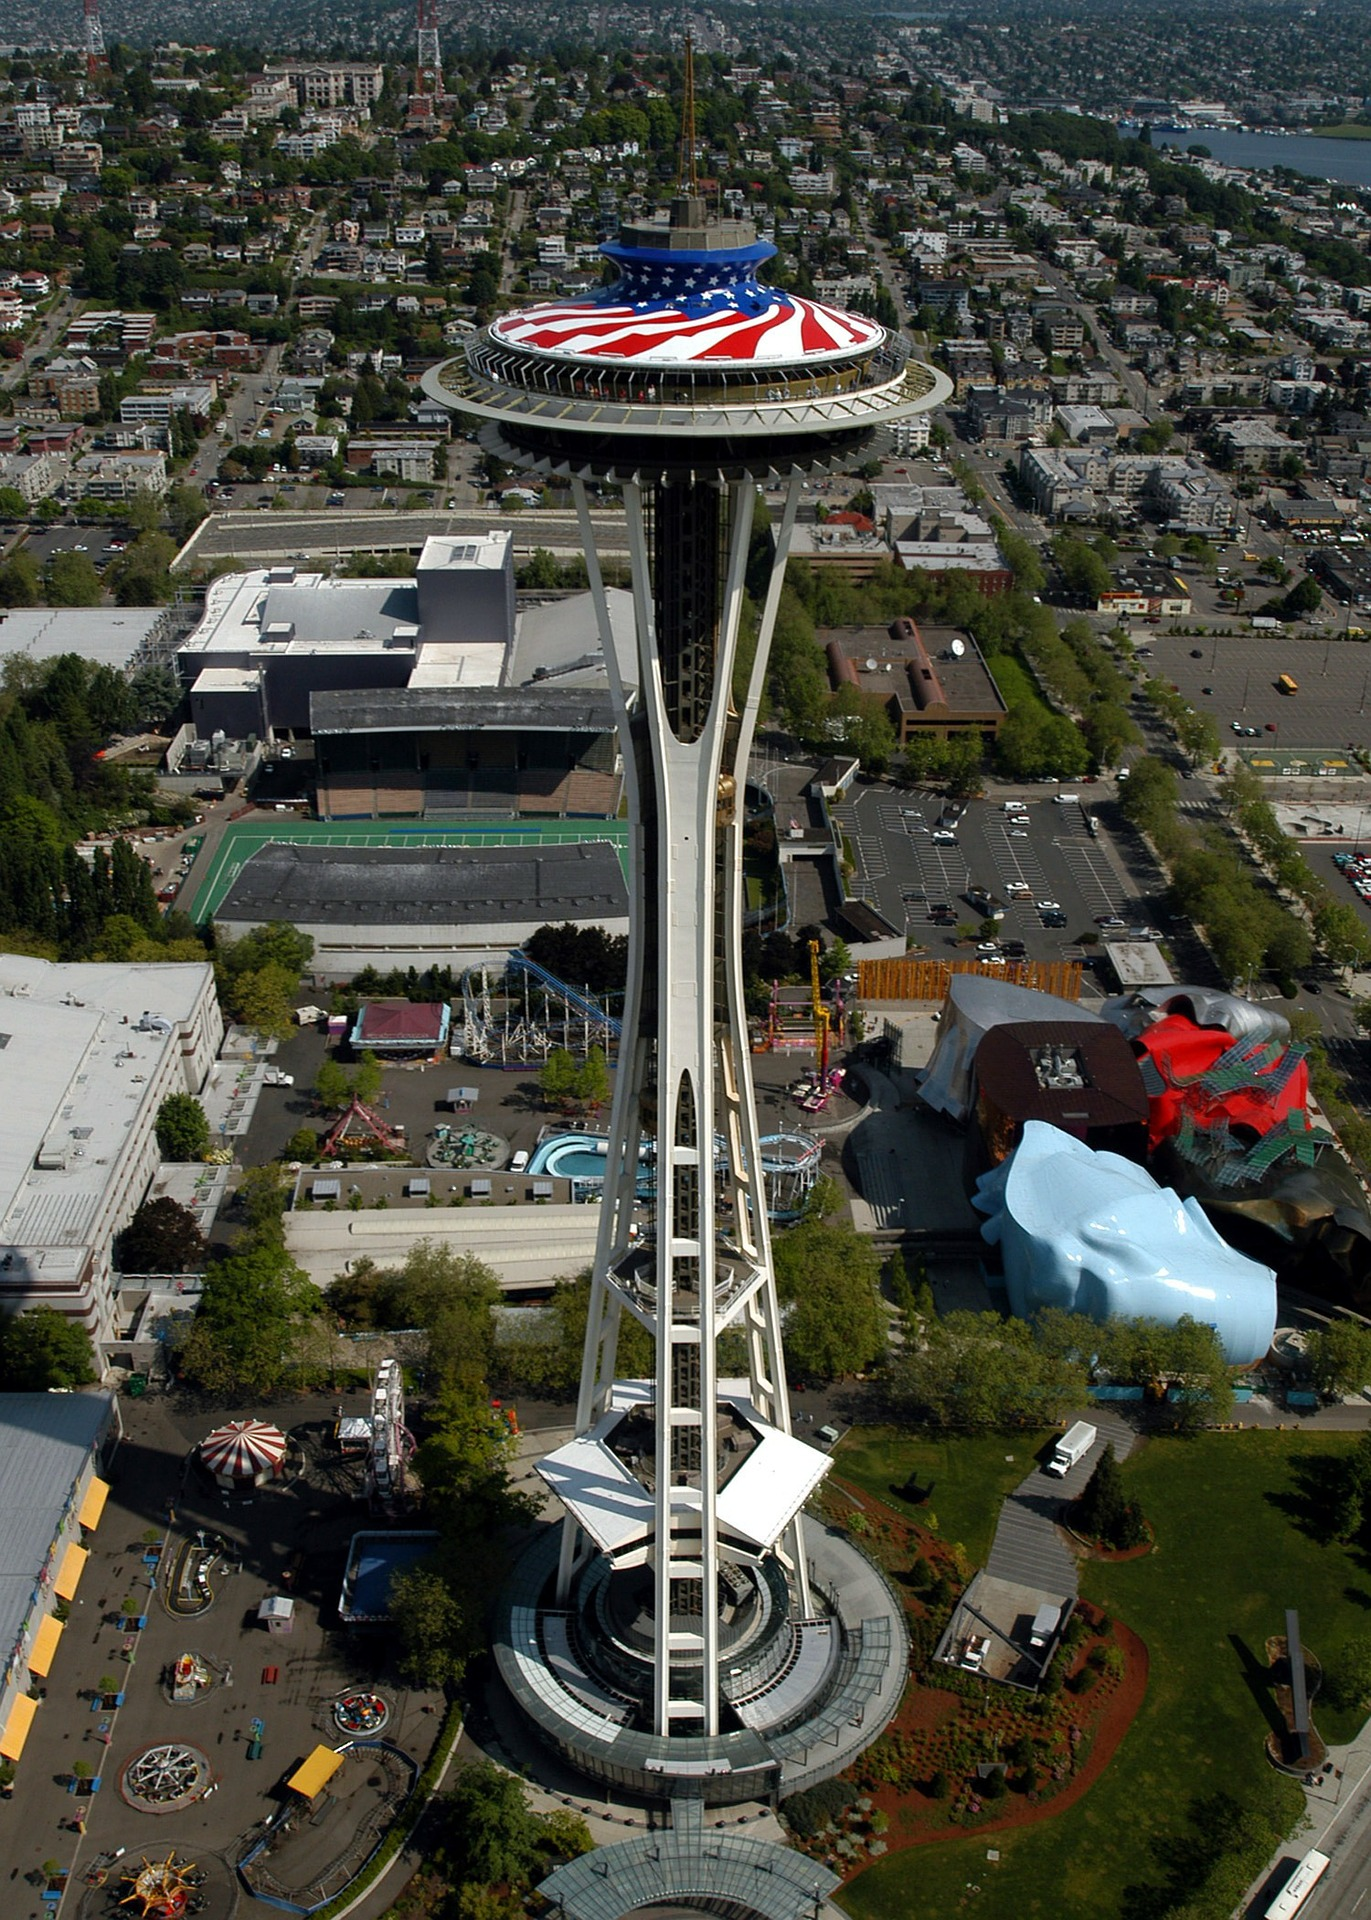 Aerial view of The Space Needle, Seattle, Washington